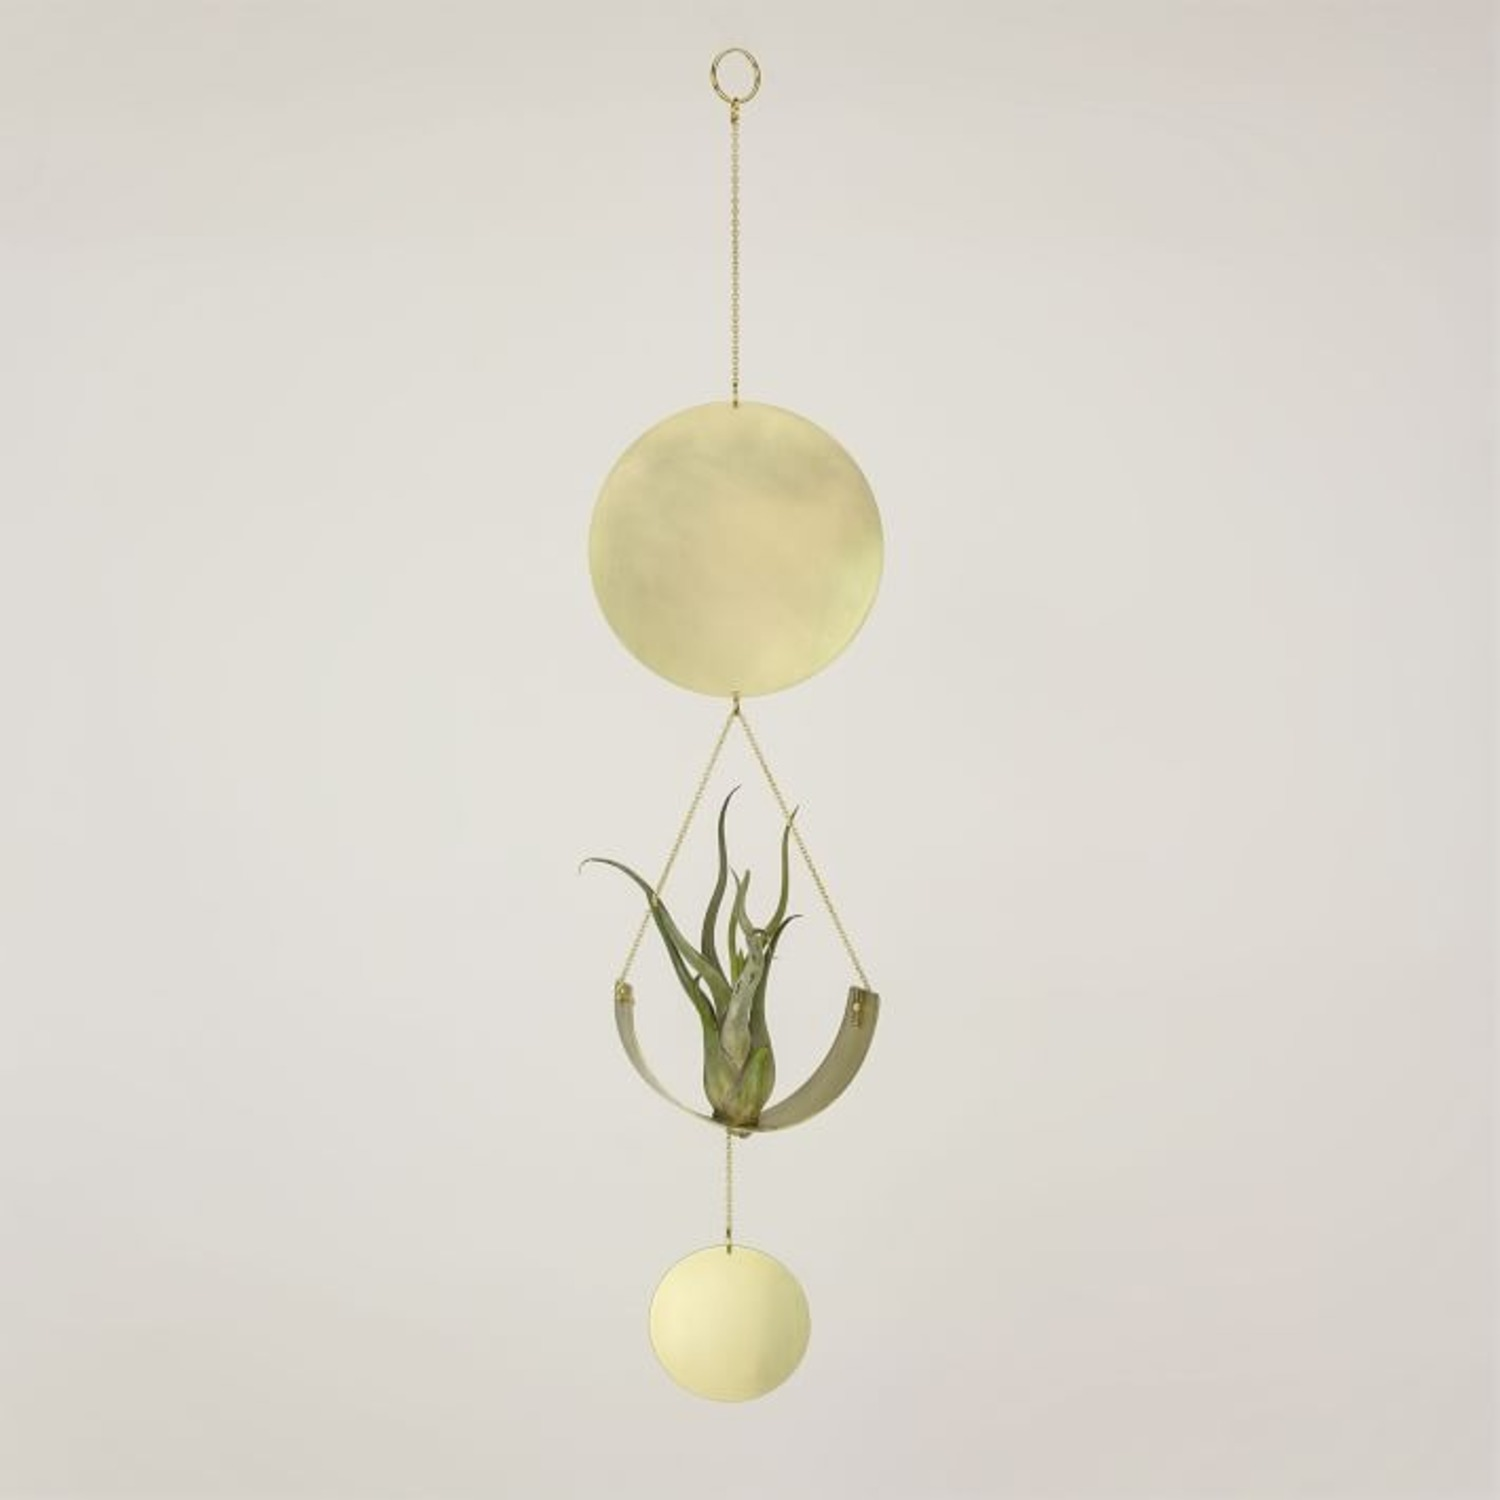 West Elm Airplant Wall Hanging, Brass - image-1